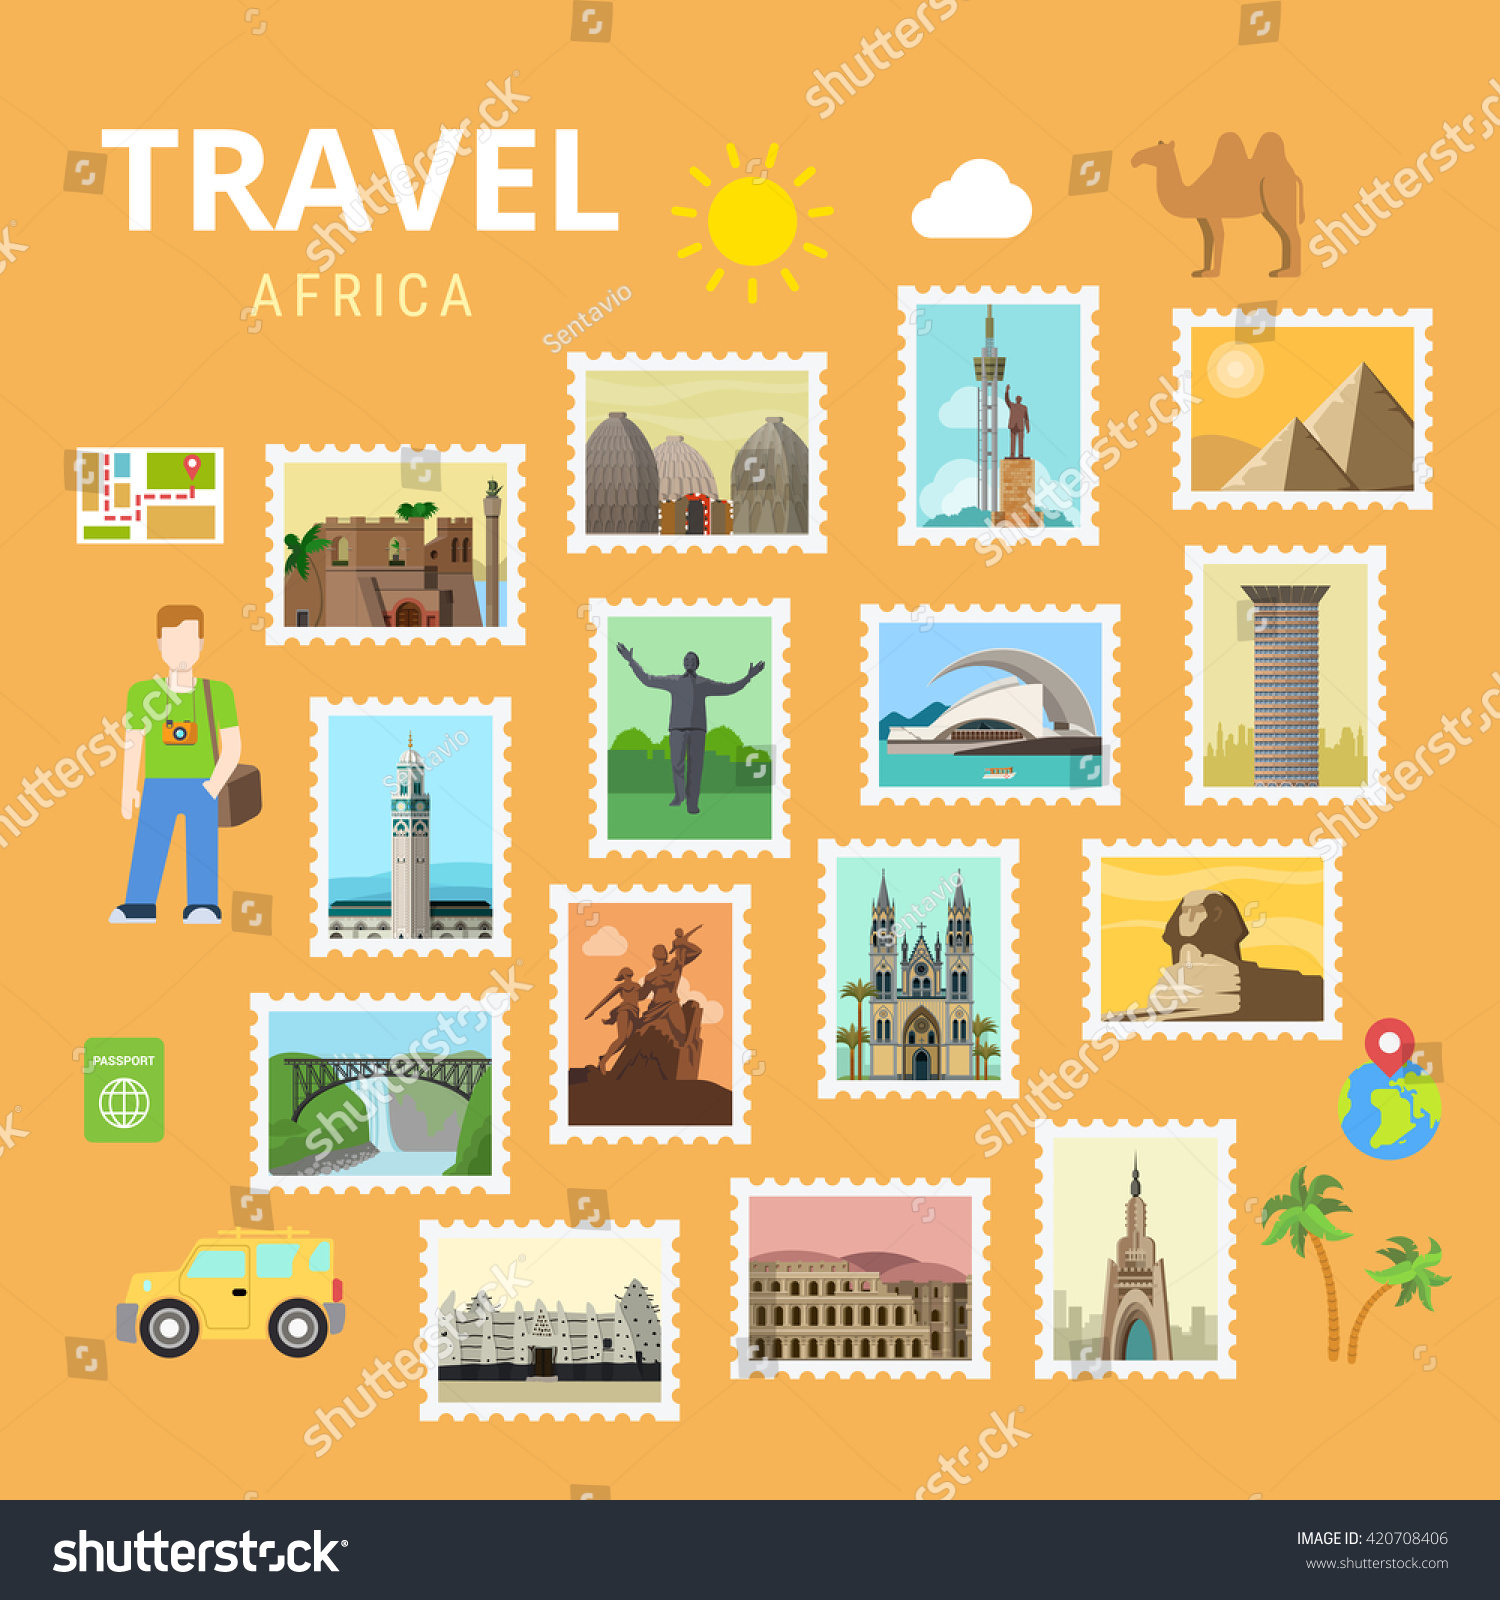 Travel Africa Egypt Pyramid Sphinx Map Stock Vector Royalty Free 420708406